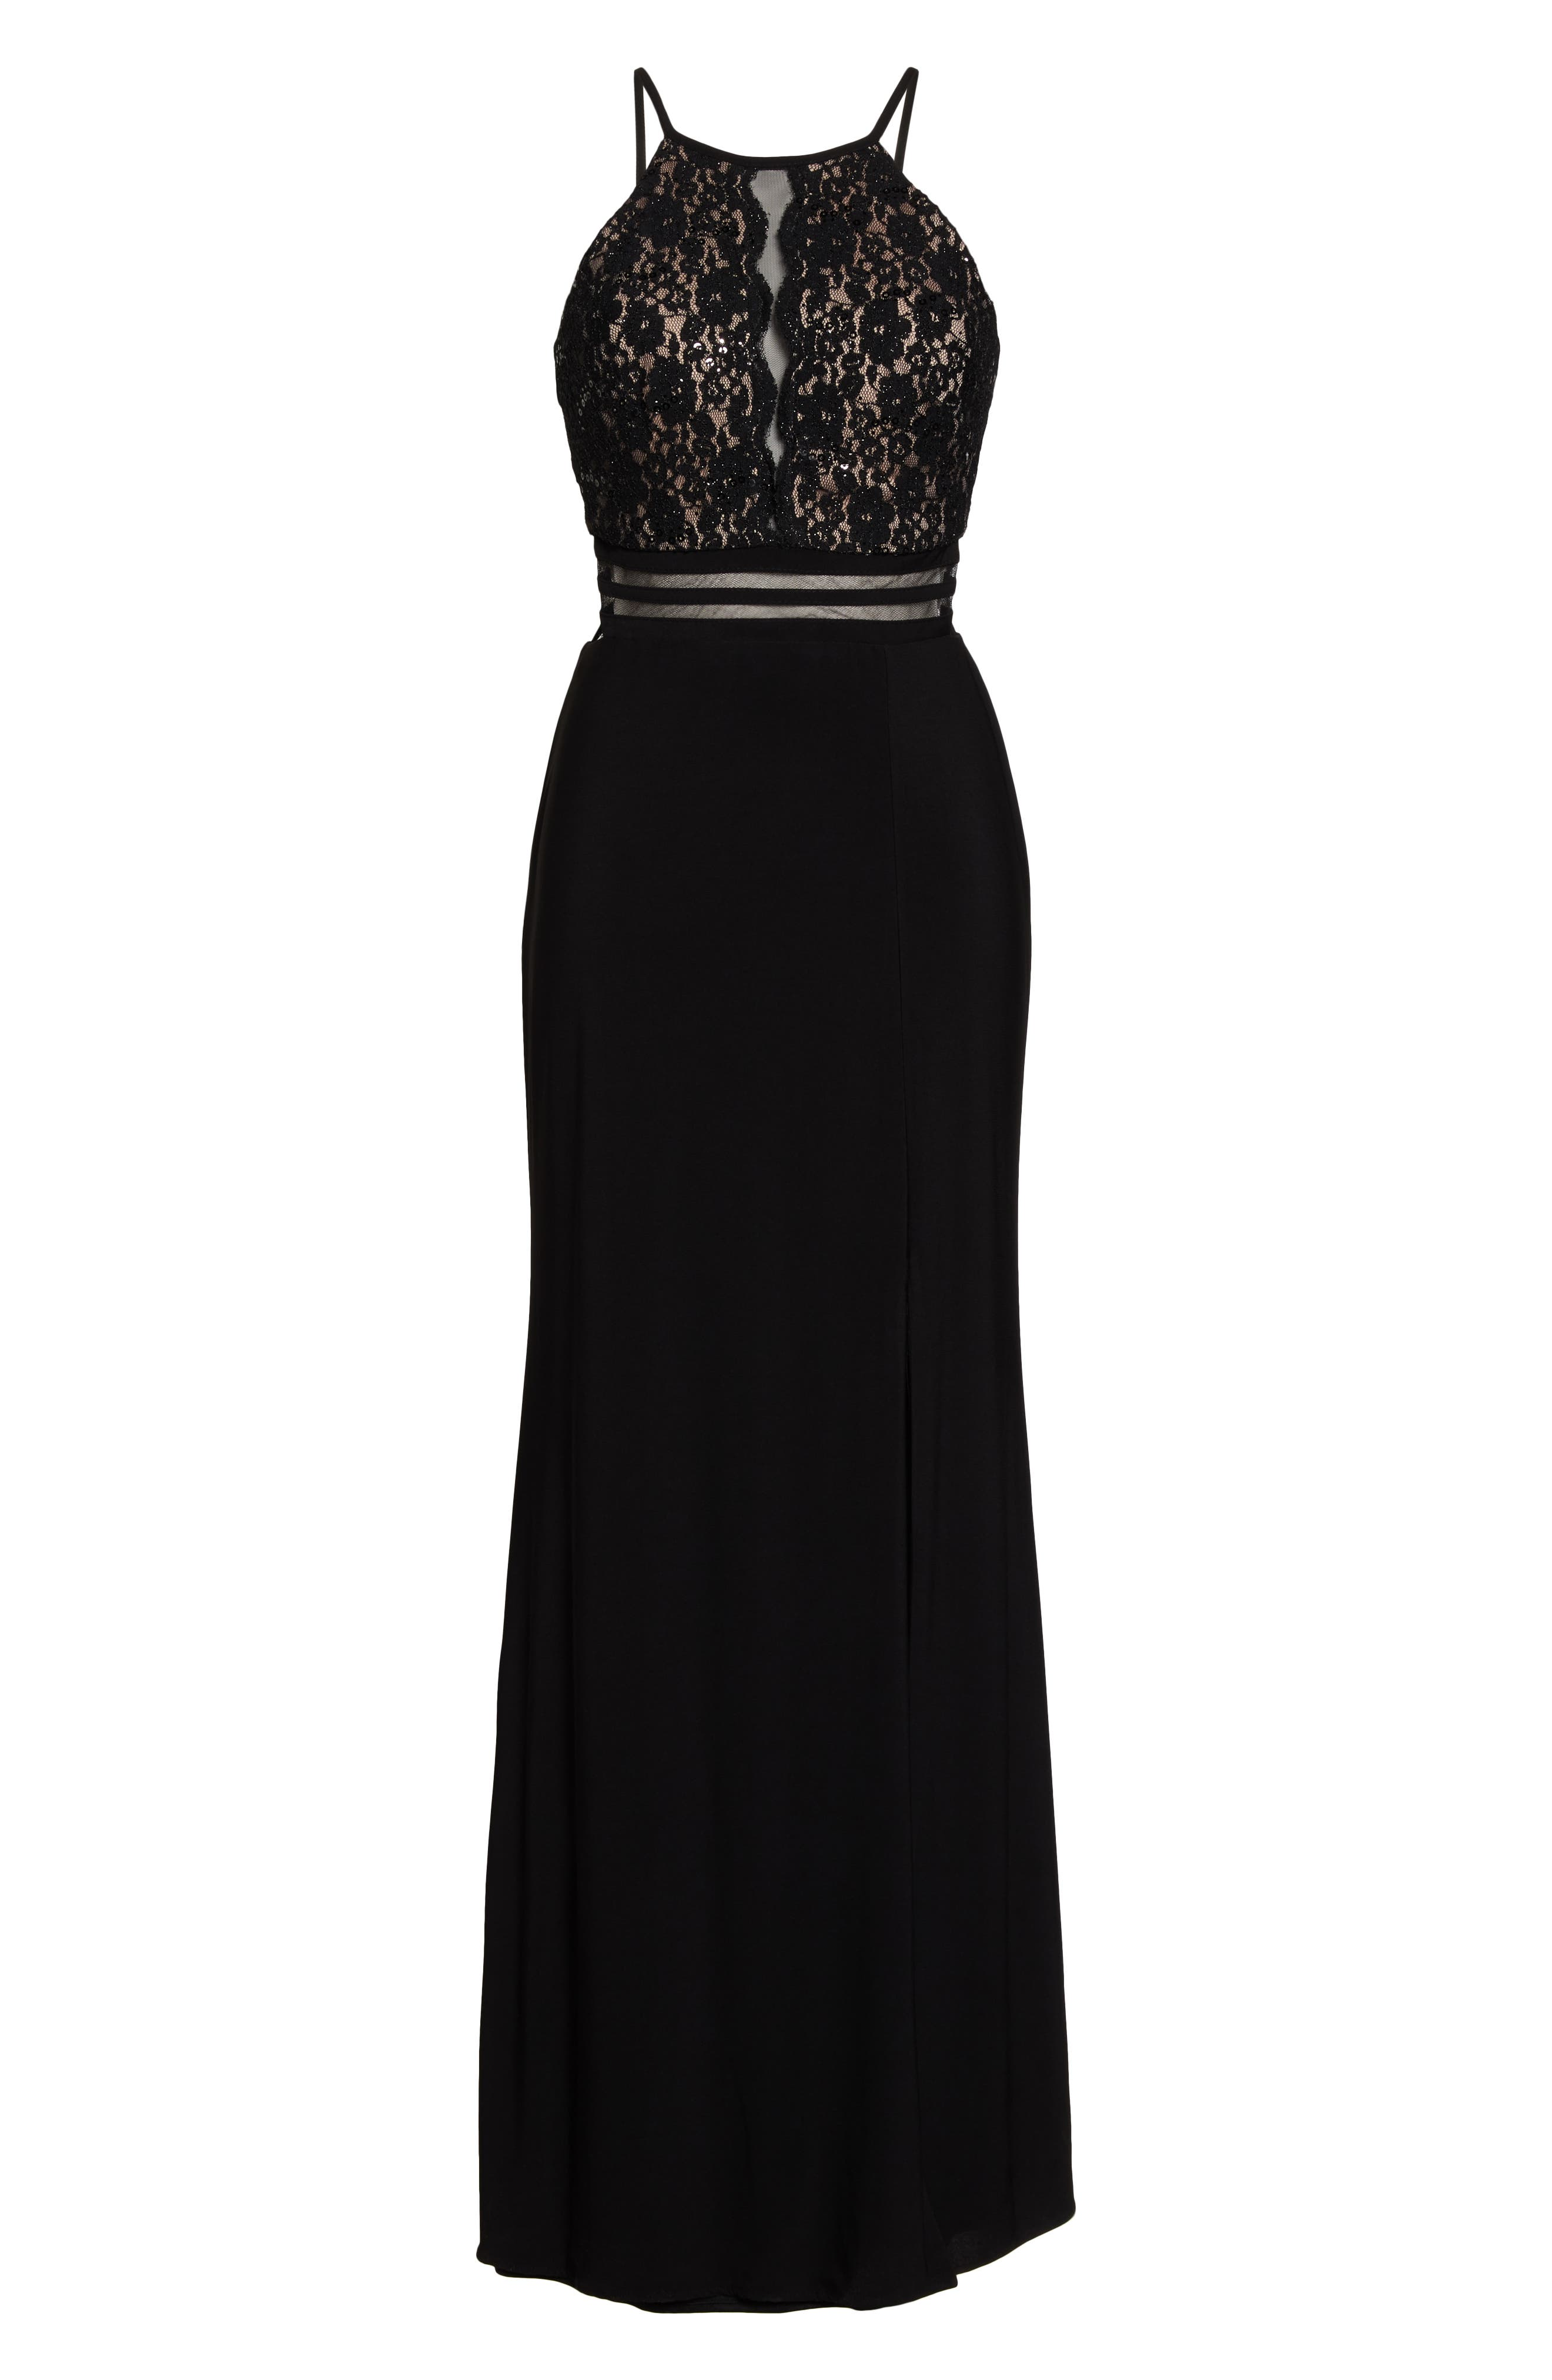 MORGAN & CO.,                             Strappy Lace Bodice Gown,                             Alternate thumbnail 3, color,                             BLACK/ NUDE